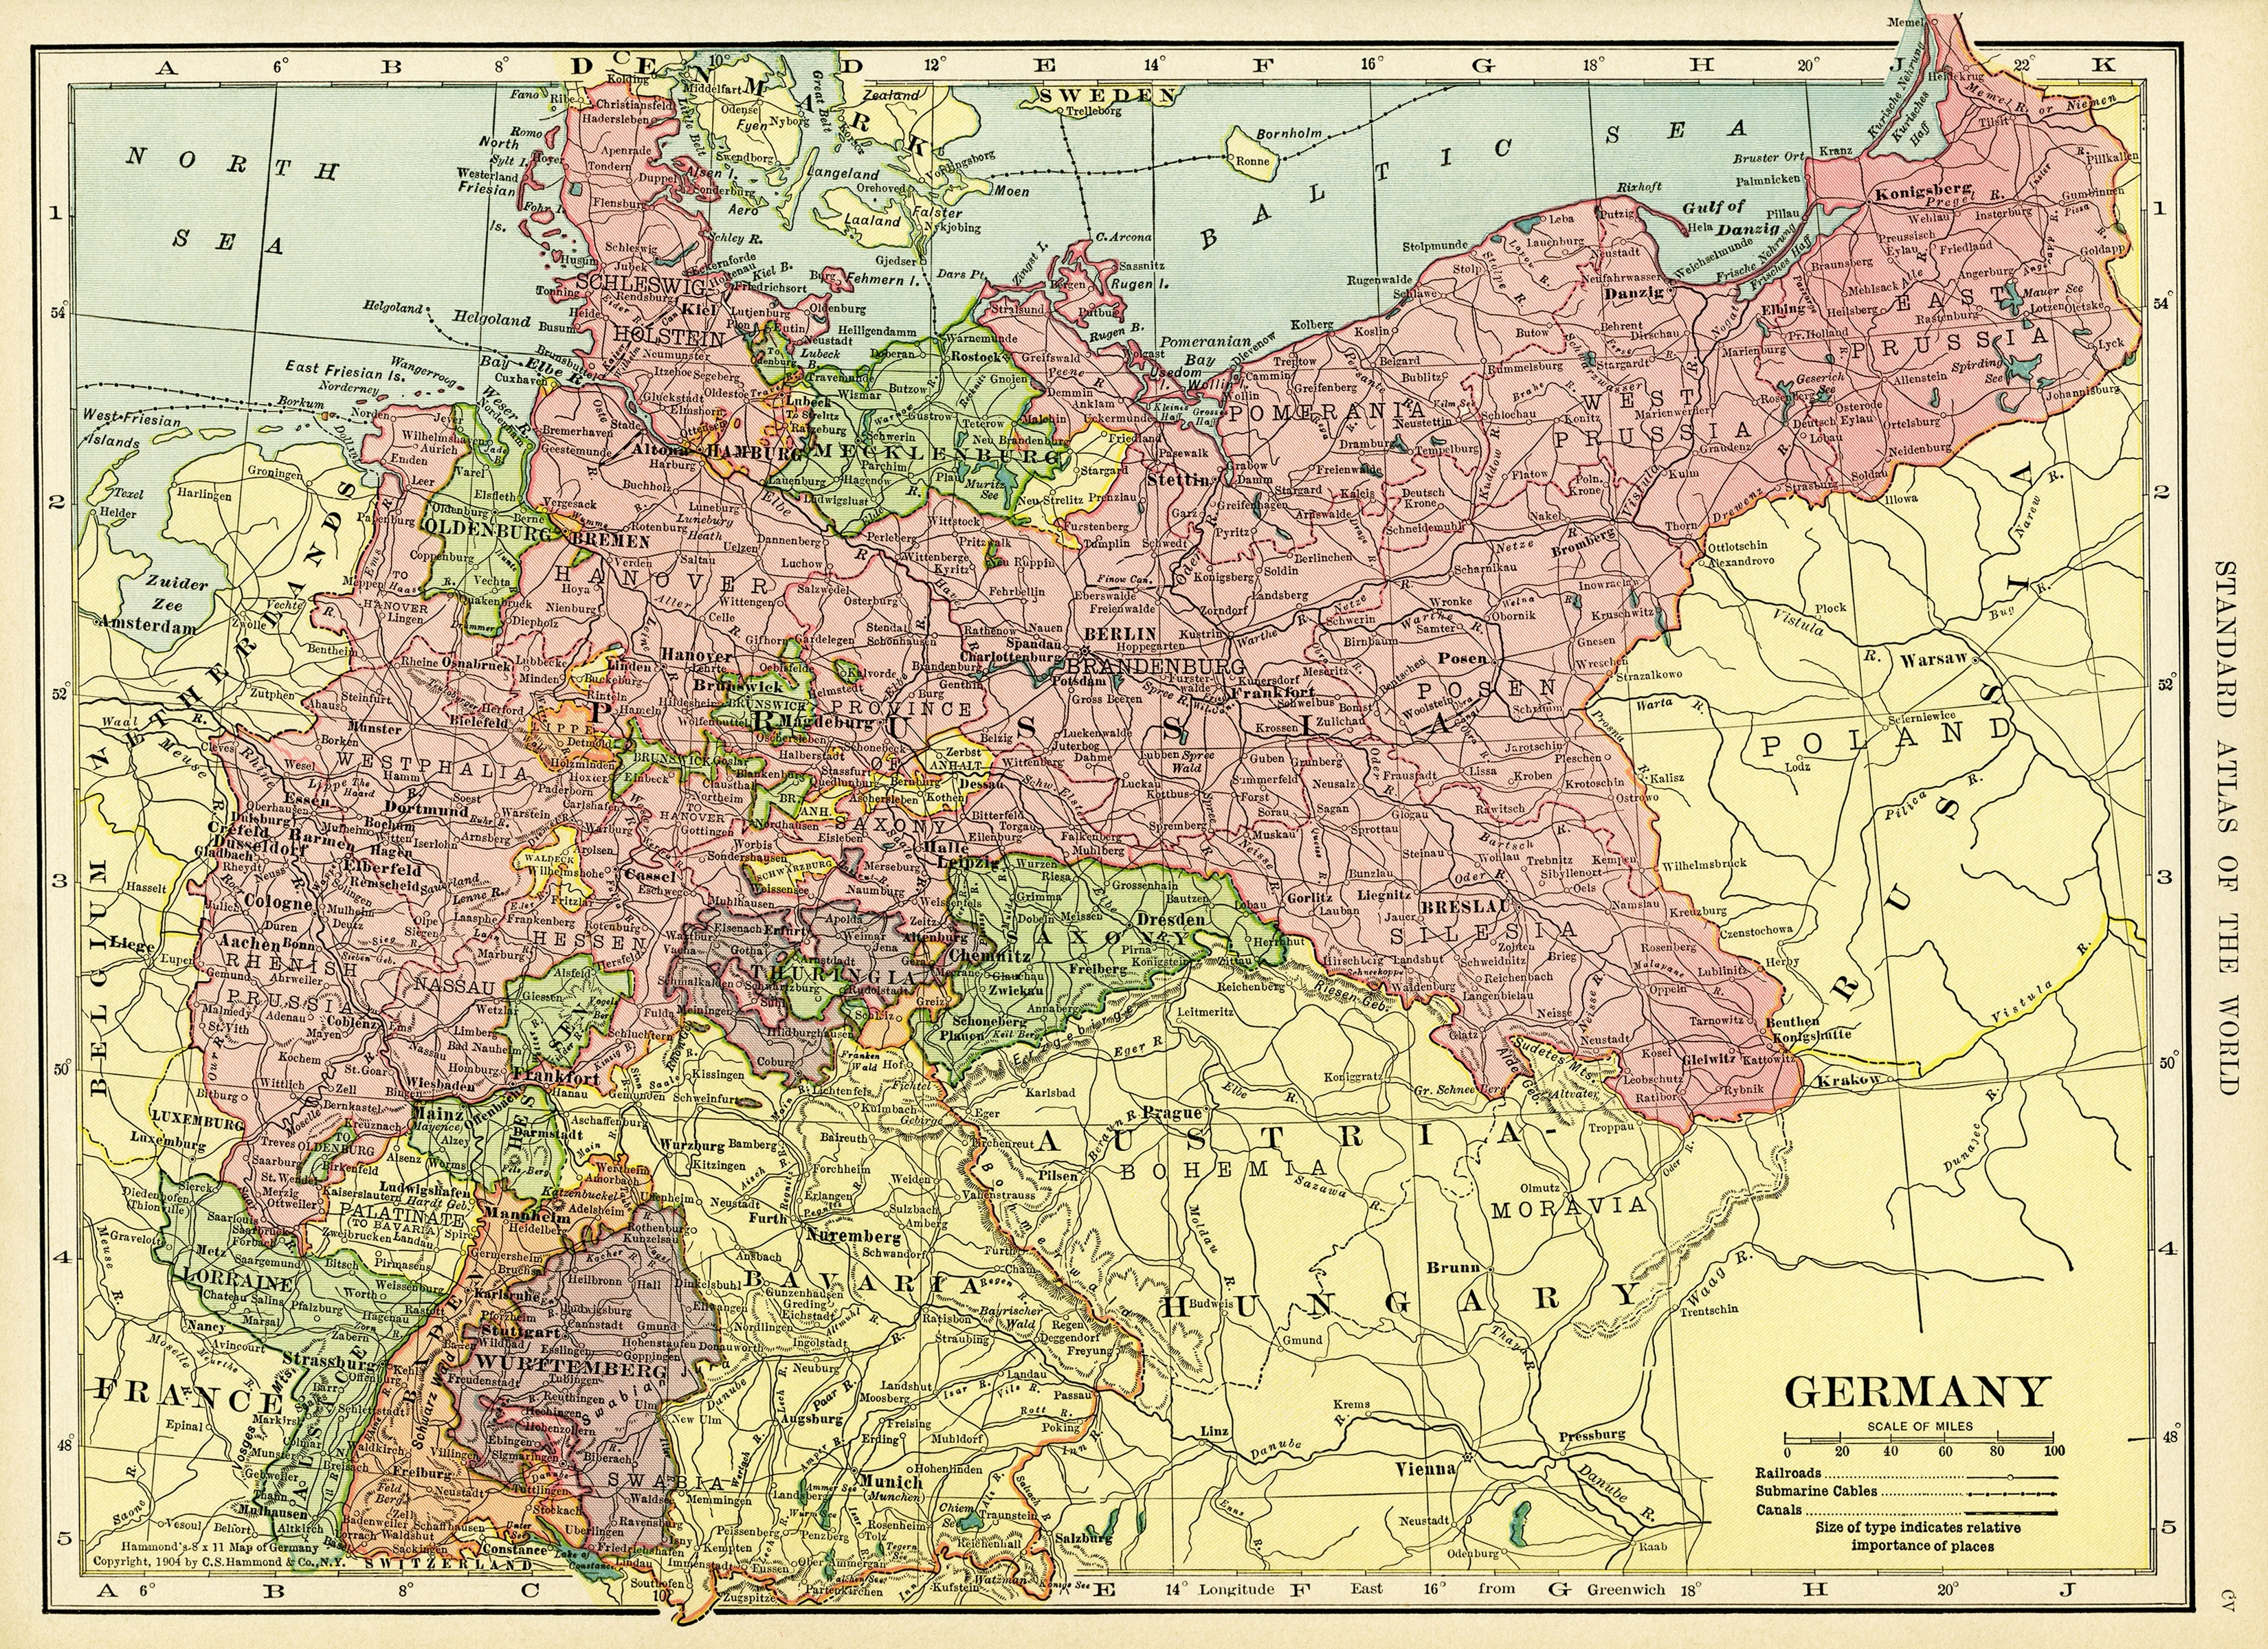 Historical Map Of Germany ~ Free Vintage Image - Old Design Shop Blog with Maps Of Germany Throughout History